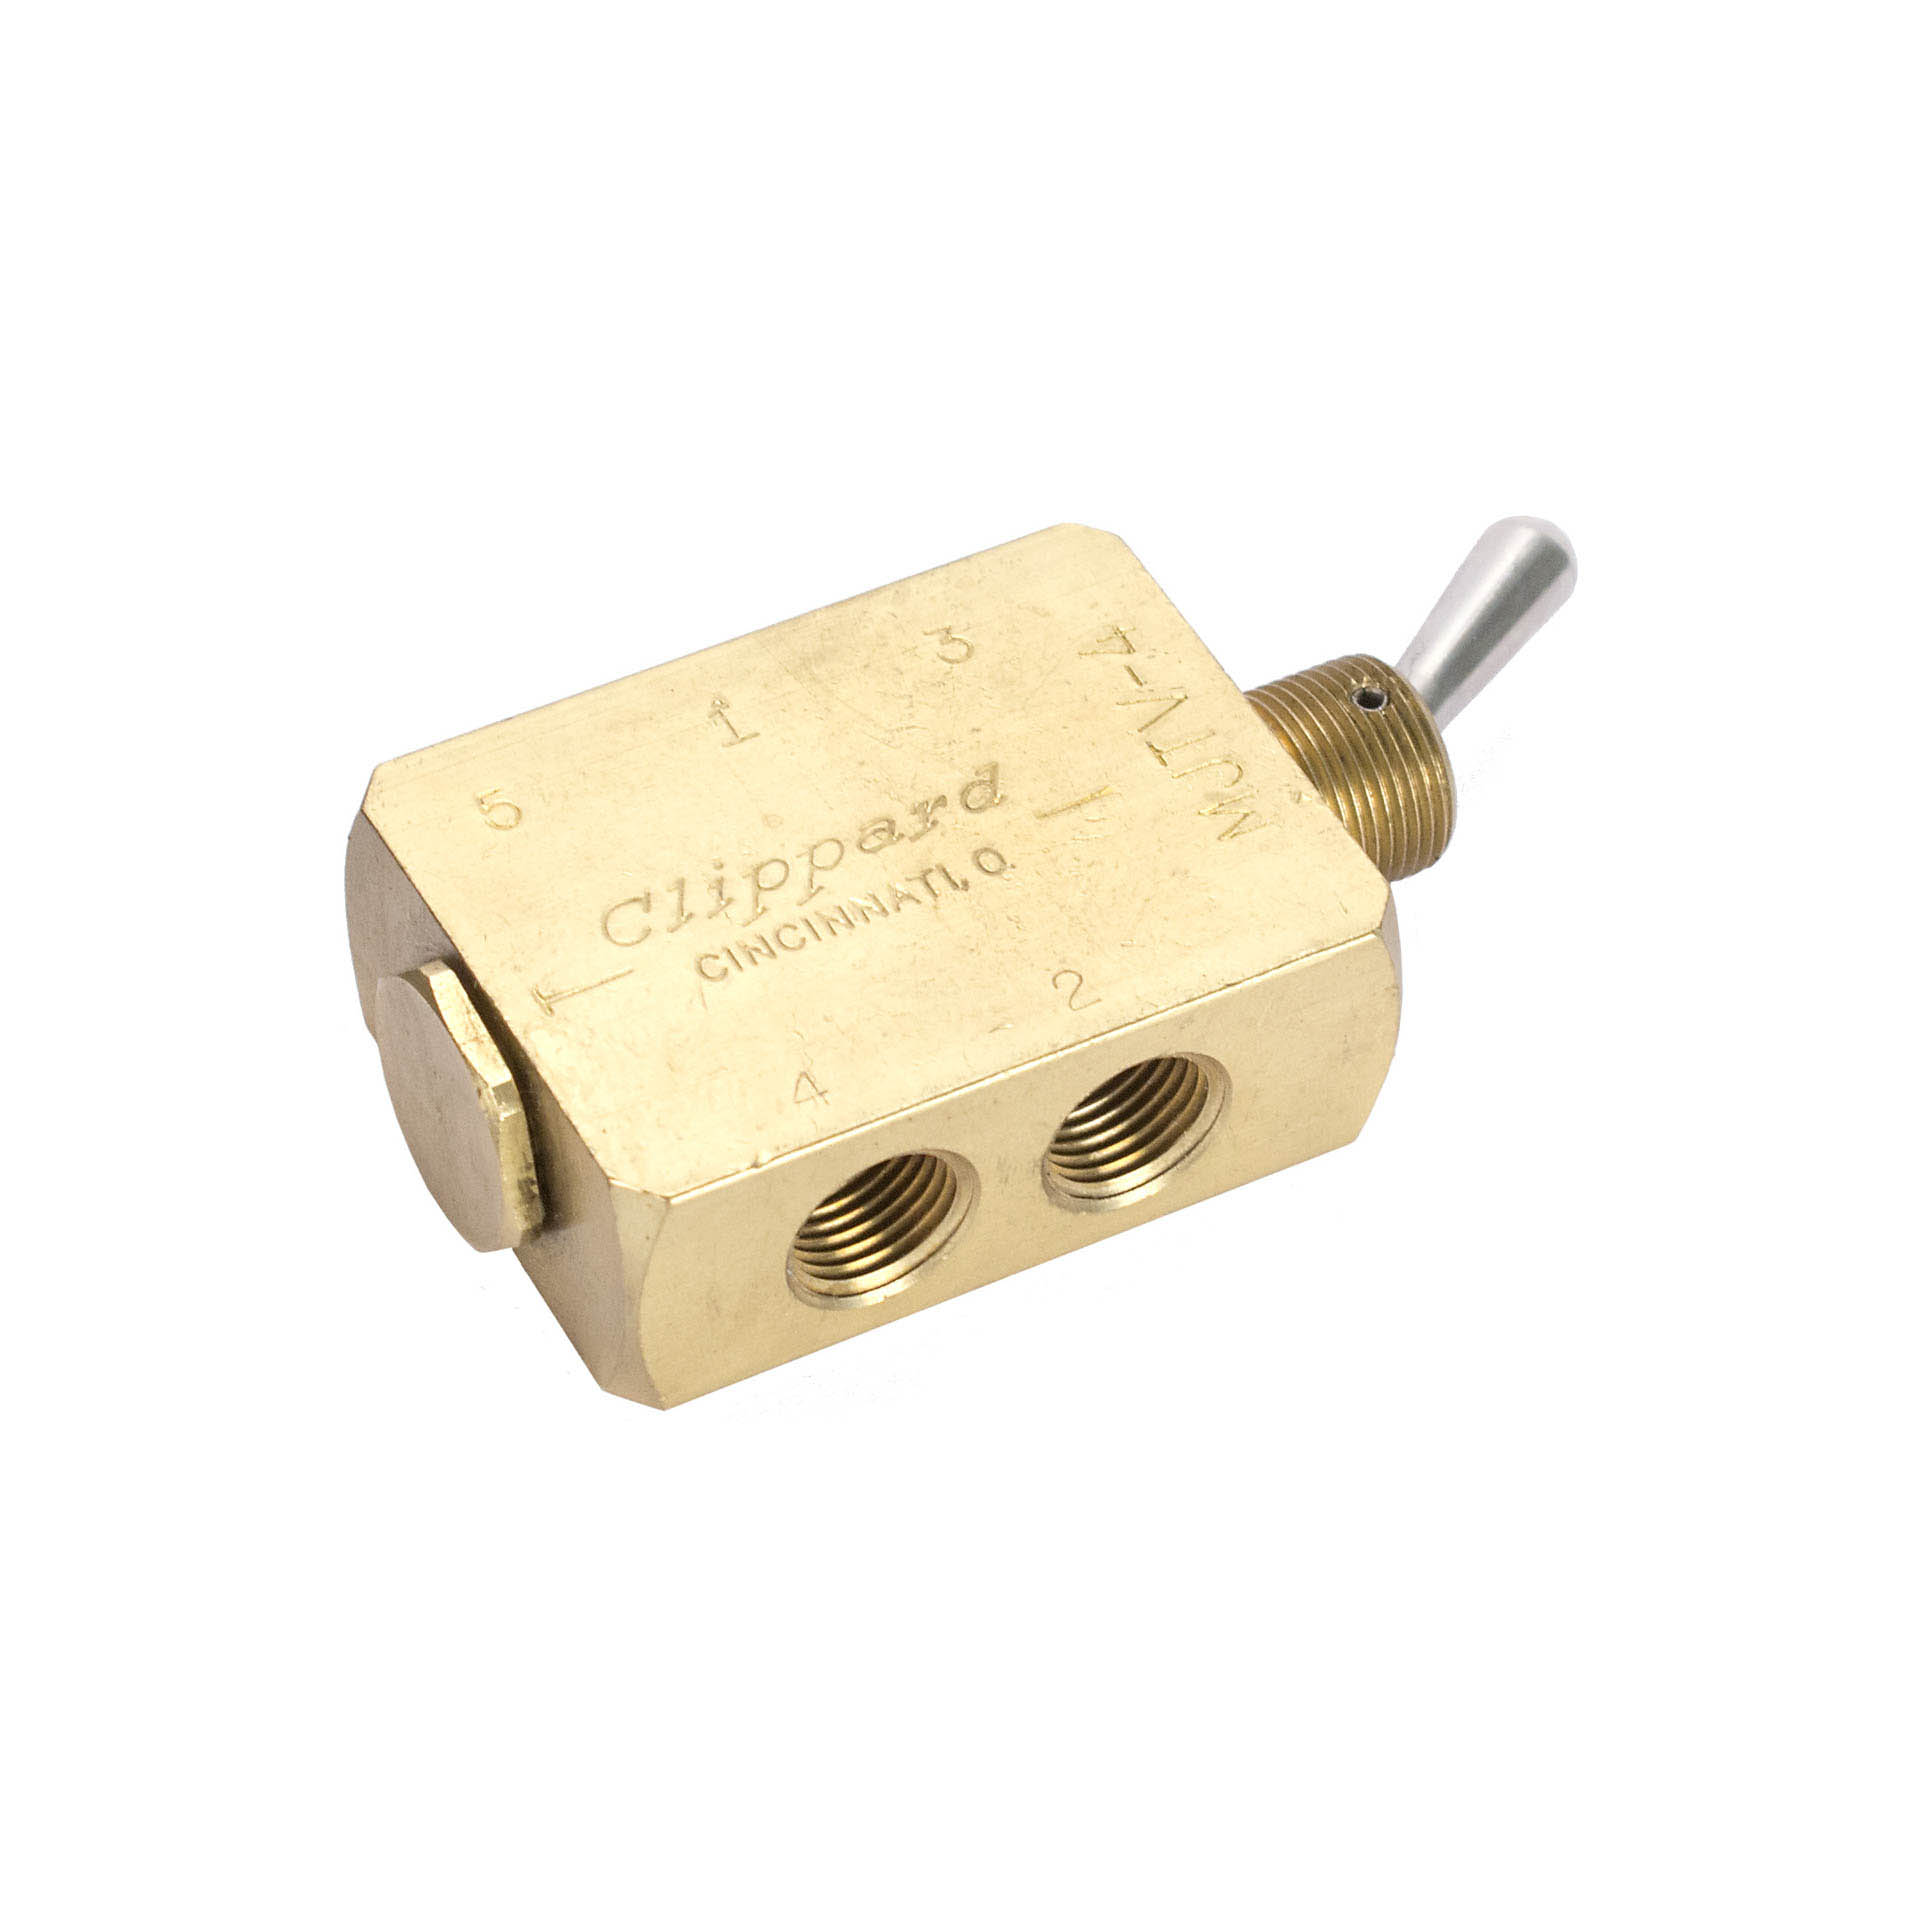 Air Toggle Switch : Buy way toggle switch online at access truck parts